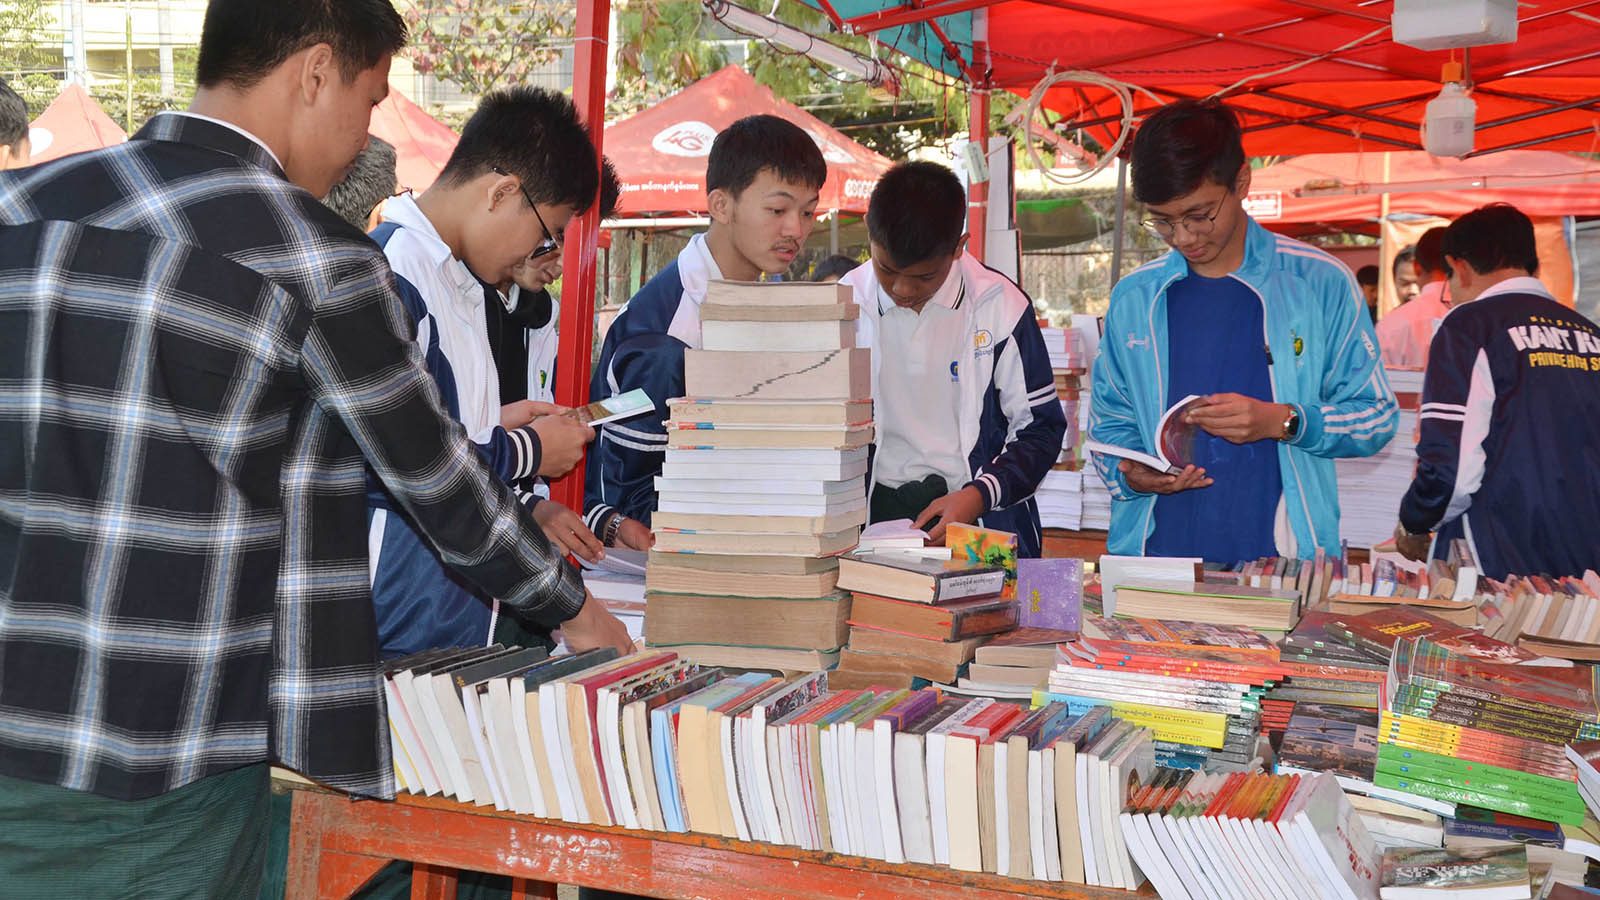 School children browse books displayed at the centenary celebration of Nandawshae Reading Association. Photo: Aung Phyo Kyaw